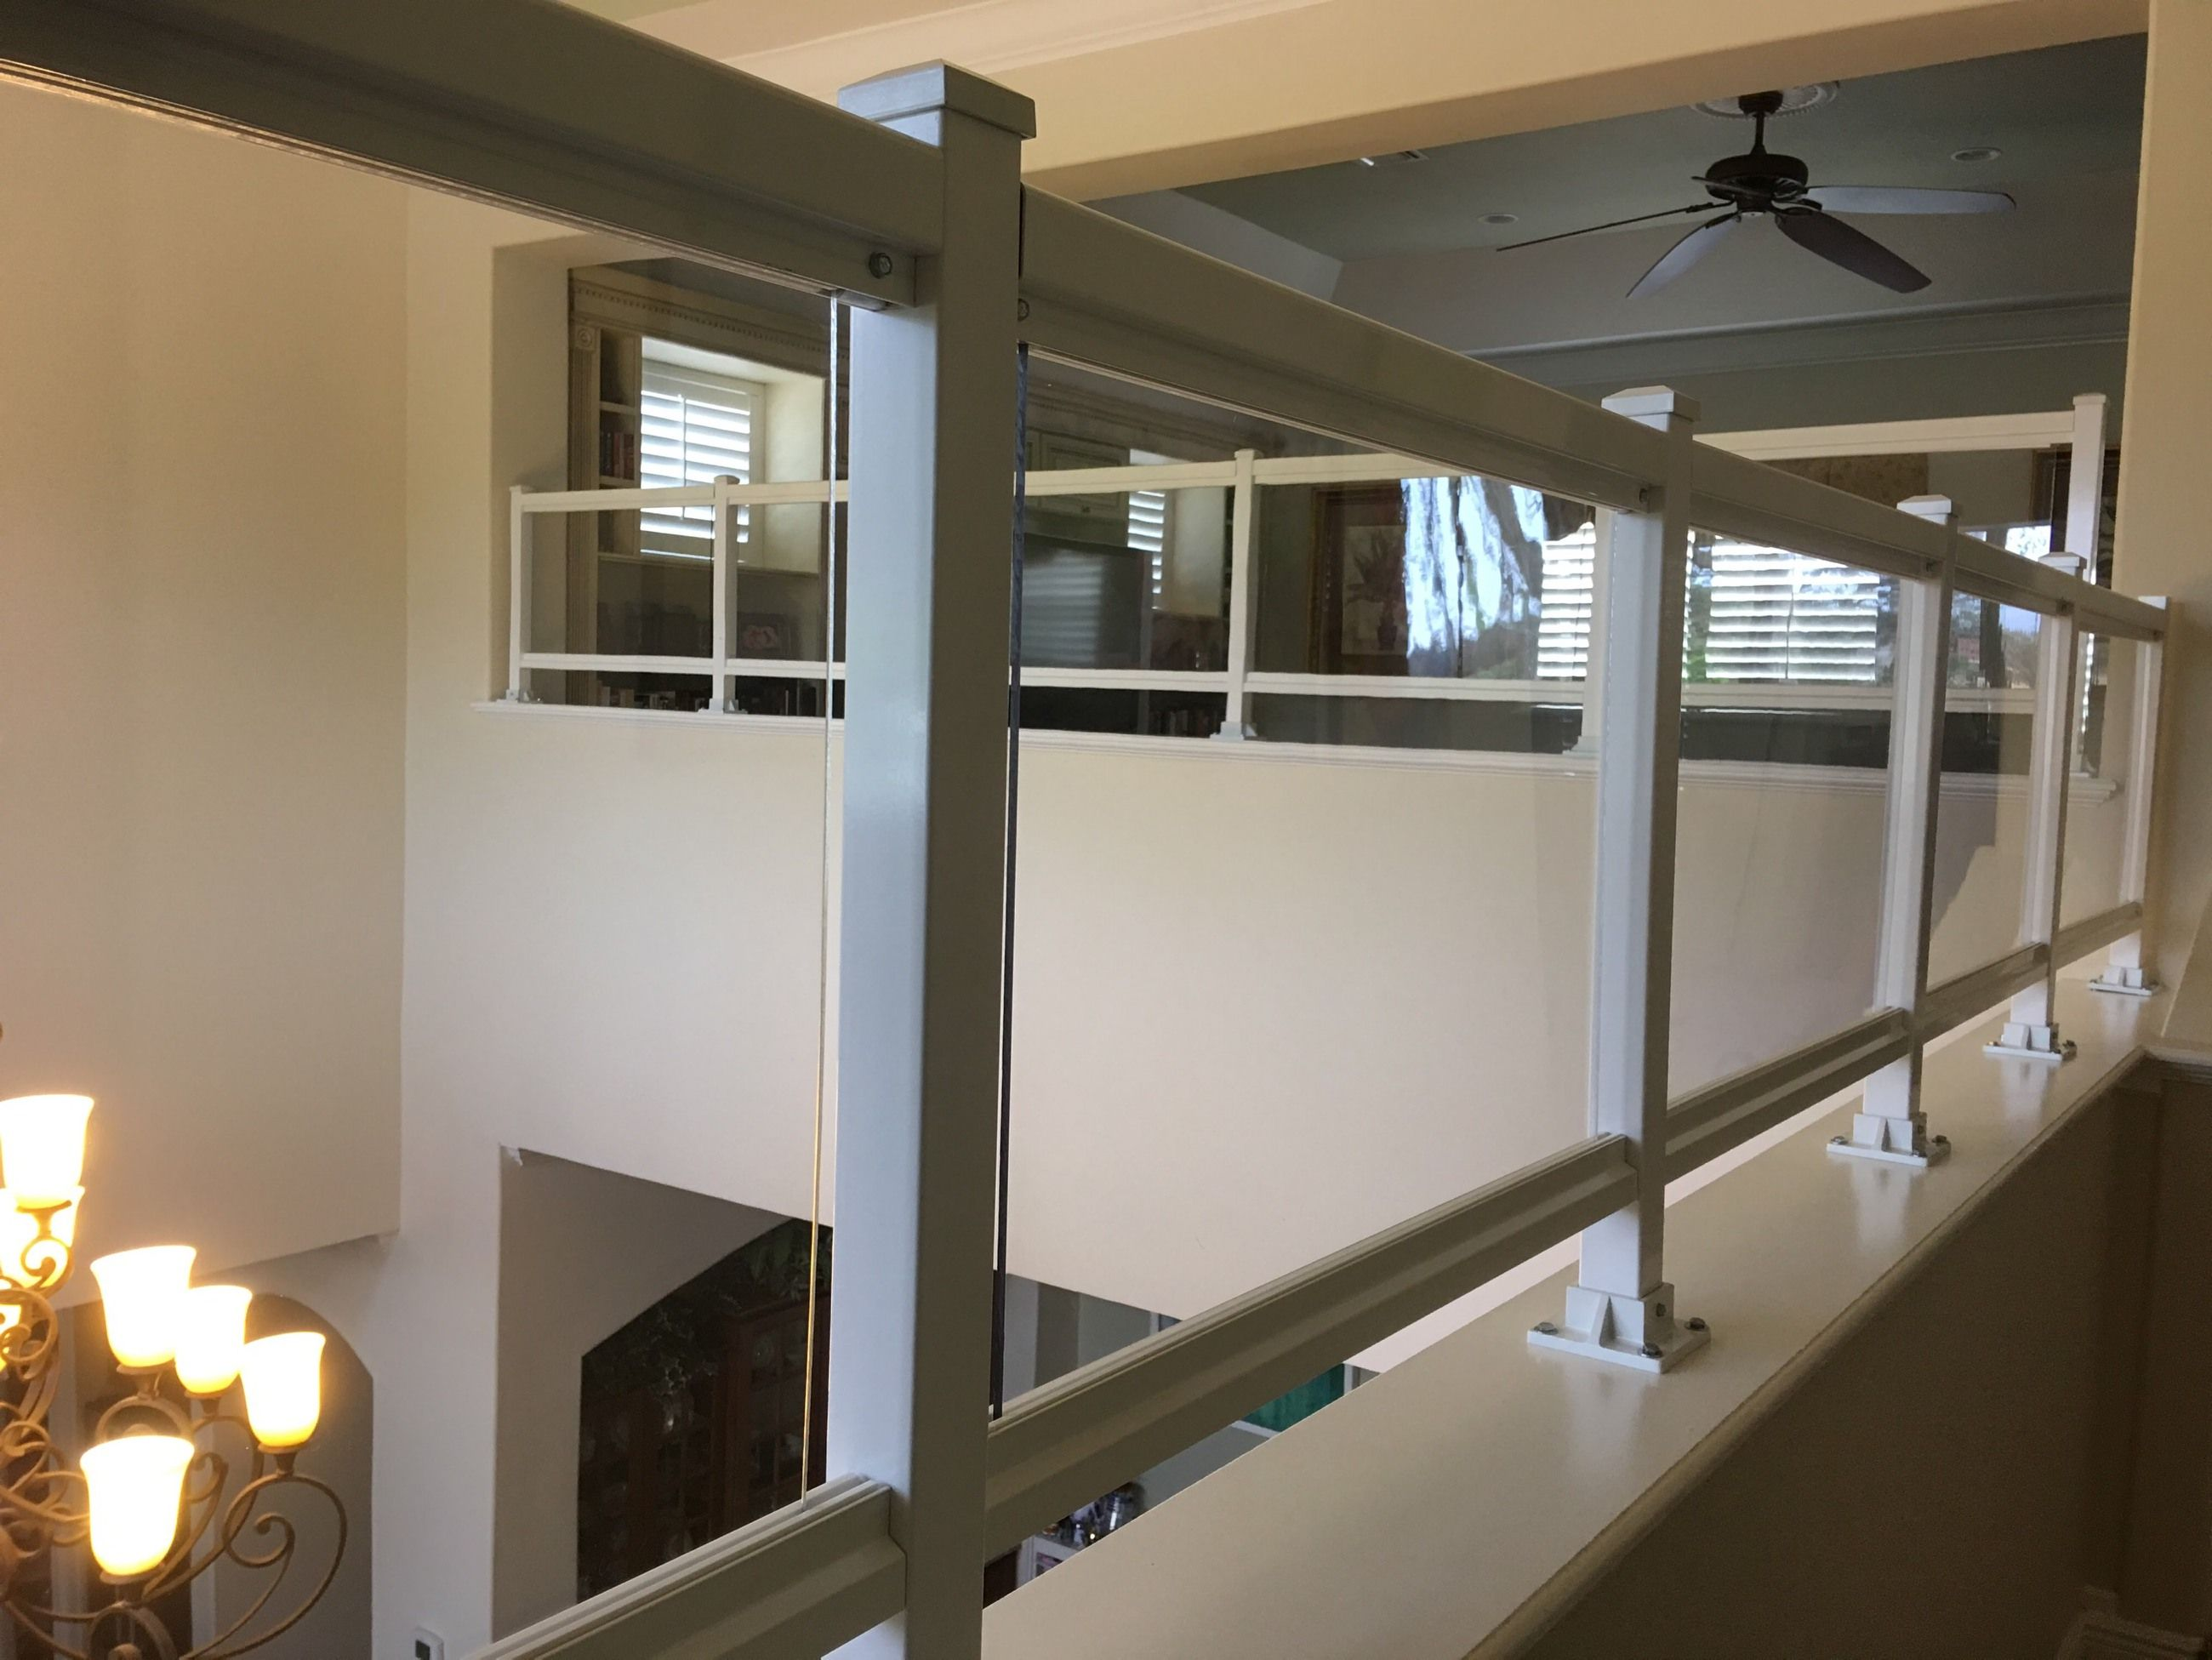 2nd Story Safety Walls Baby gates, New homes, Grab bars